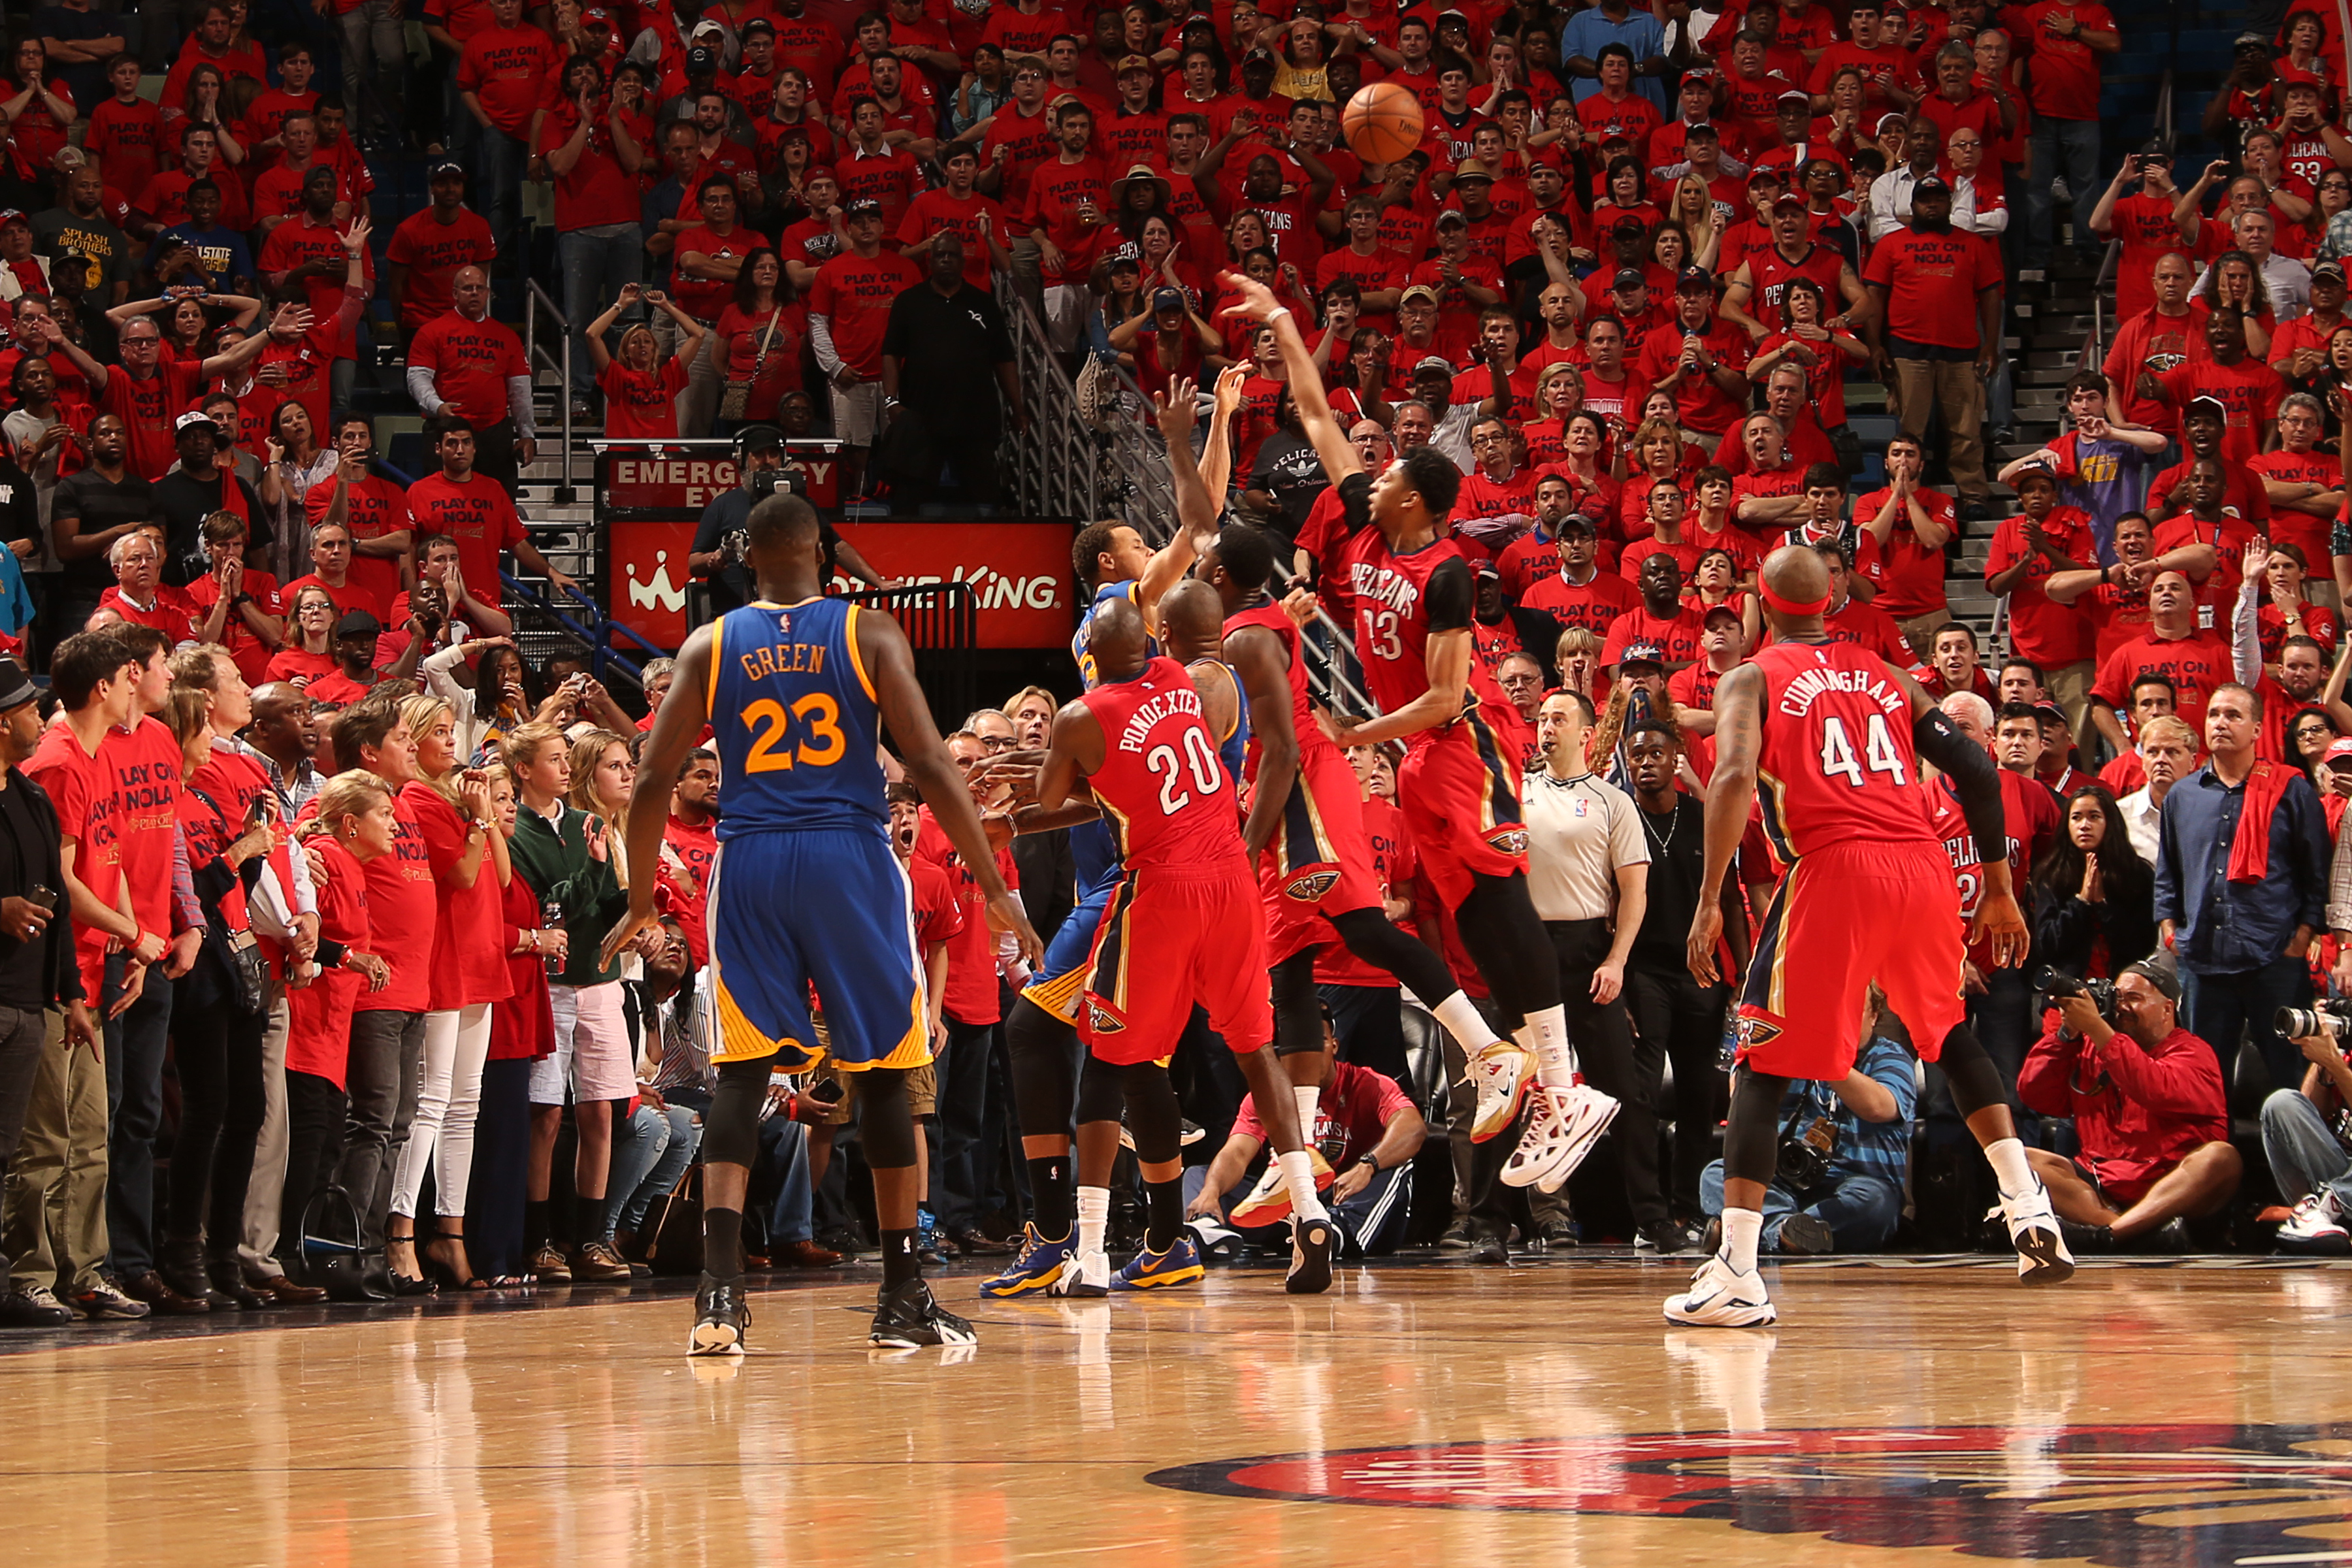 NEW ORLEANS, LA - APRIL 23: Stephen Curry #30 of the Golden State Warriors makes a three point shot against the New Orleans Pelicans to take them into overtime in Game Three of the Western Conference Quarterfinals during the NBA Playoffs on April 23, 2015